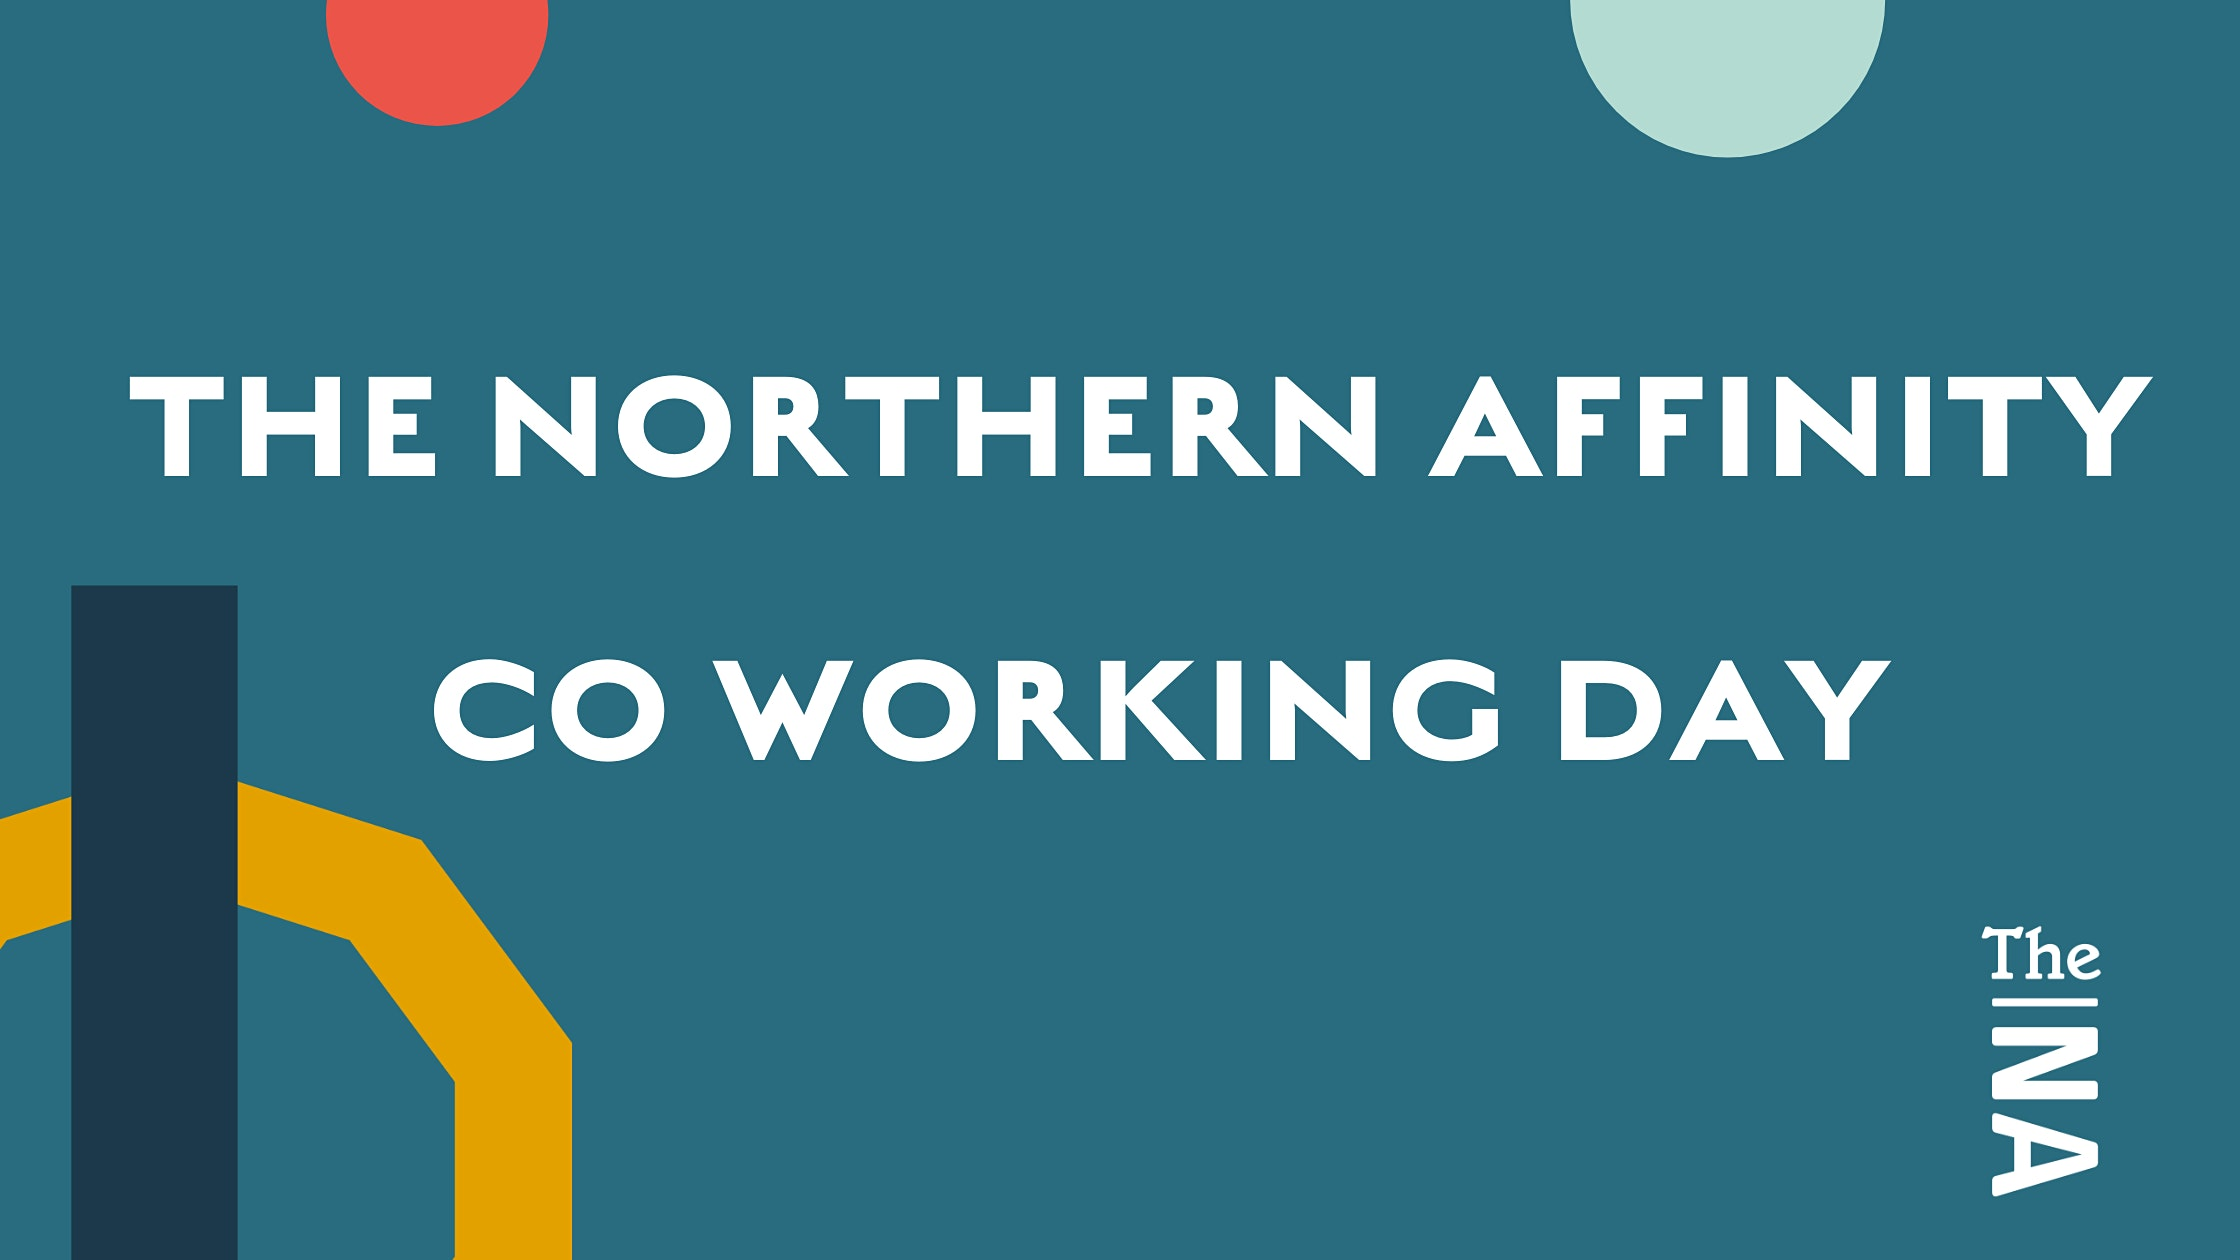 The Northern Affinity Co Working Day @ Clockwise Manchester